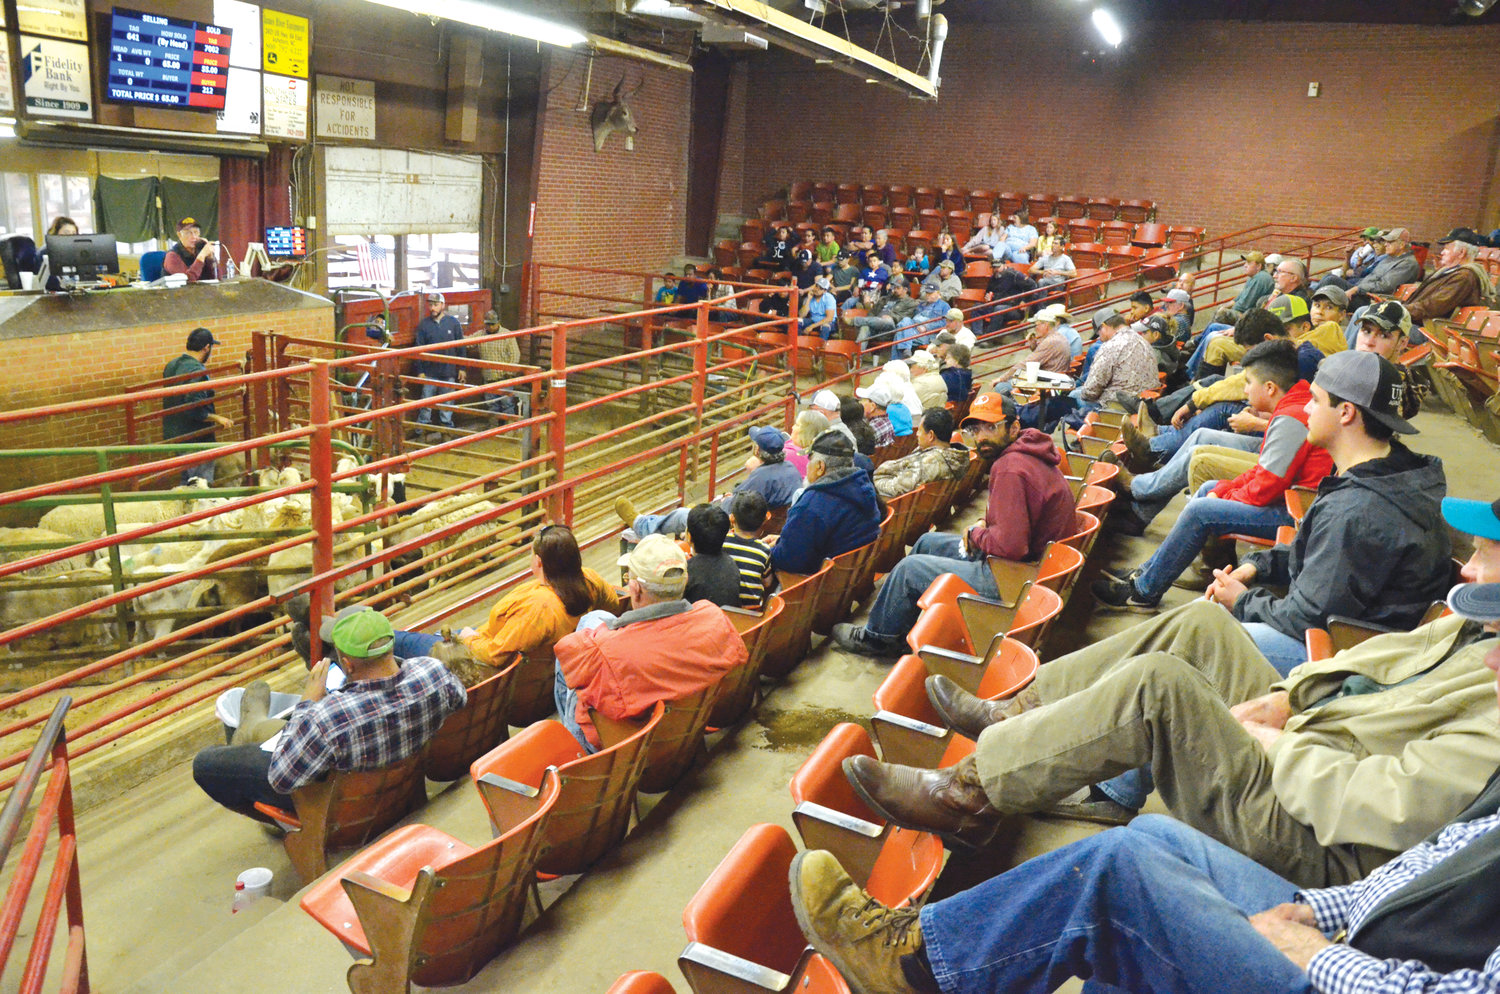 A good crowd is on hand Friday to watch and bid on the livestock going through the pens at the Carolina Stockyard. A tote board above auctioneer Kenneth Green and clerk Meghan Teague keeps track of the animals being sold, and their price.